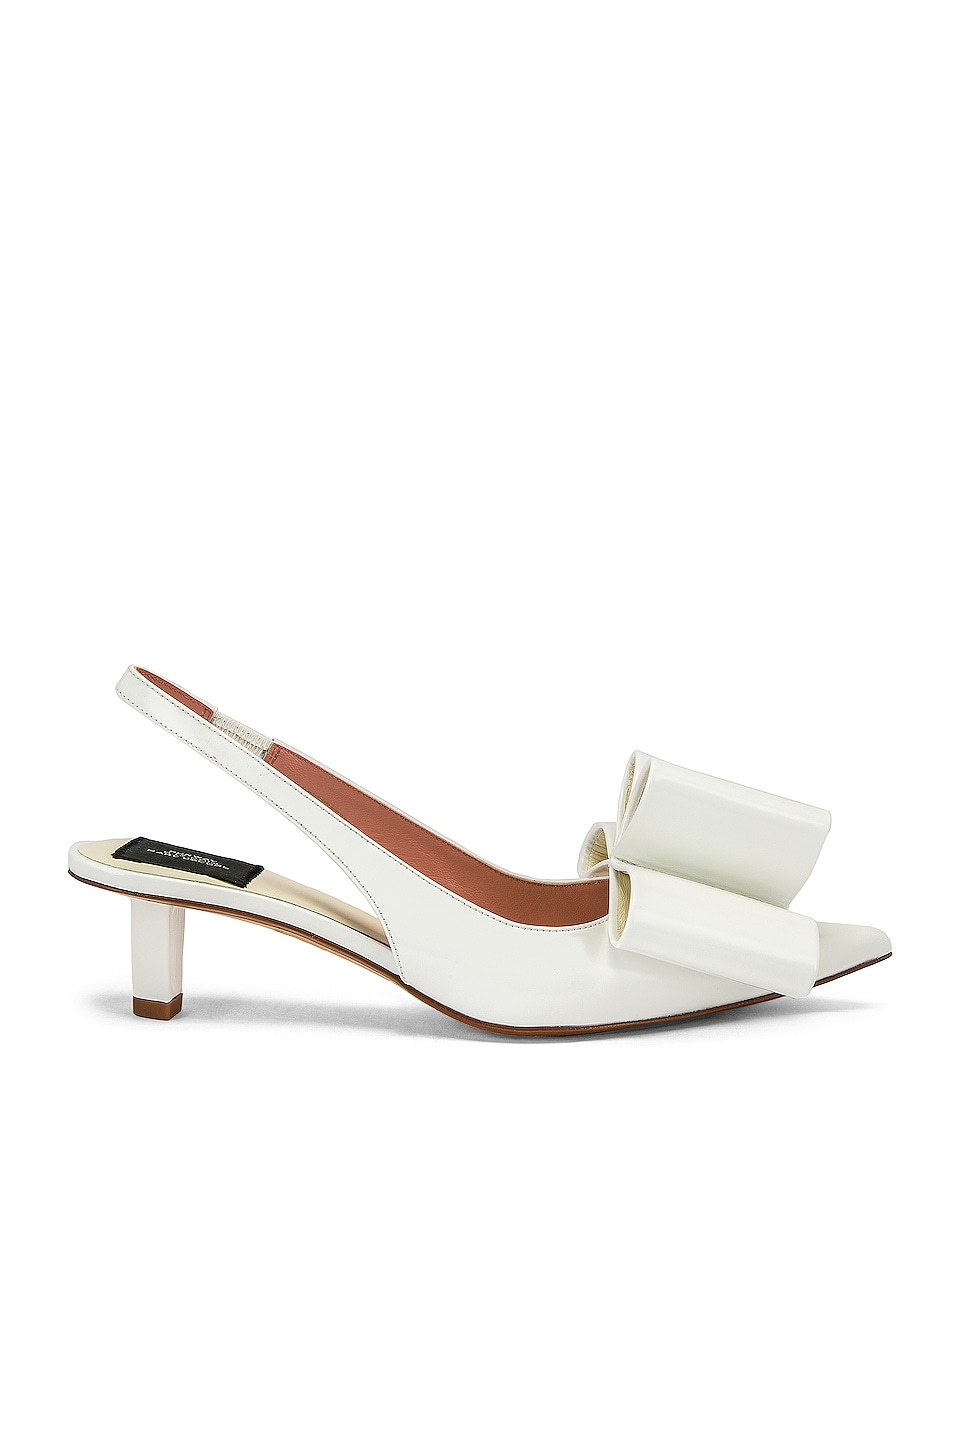 Marc Jacobs Bow Slingback Pump in White